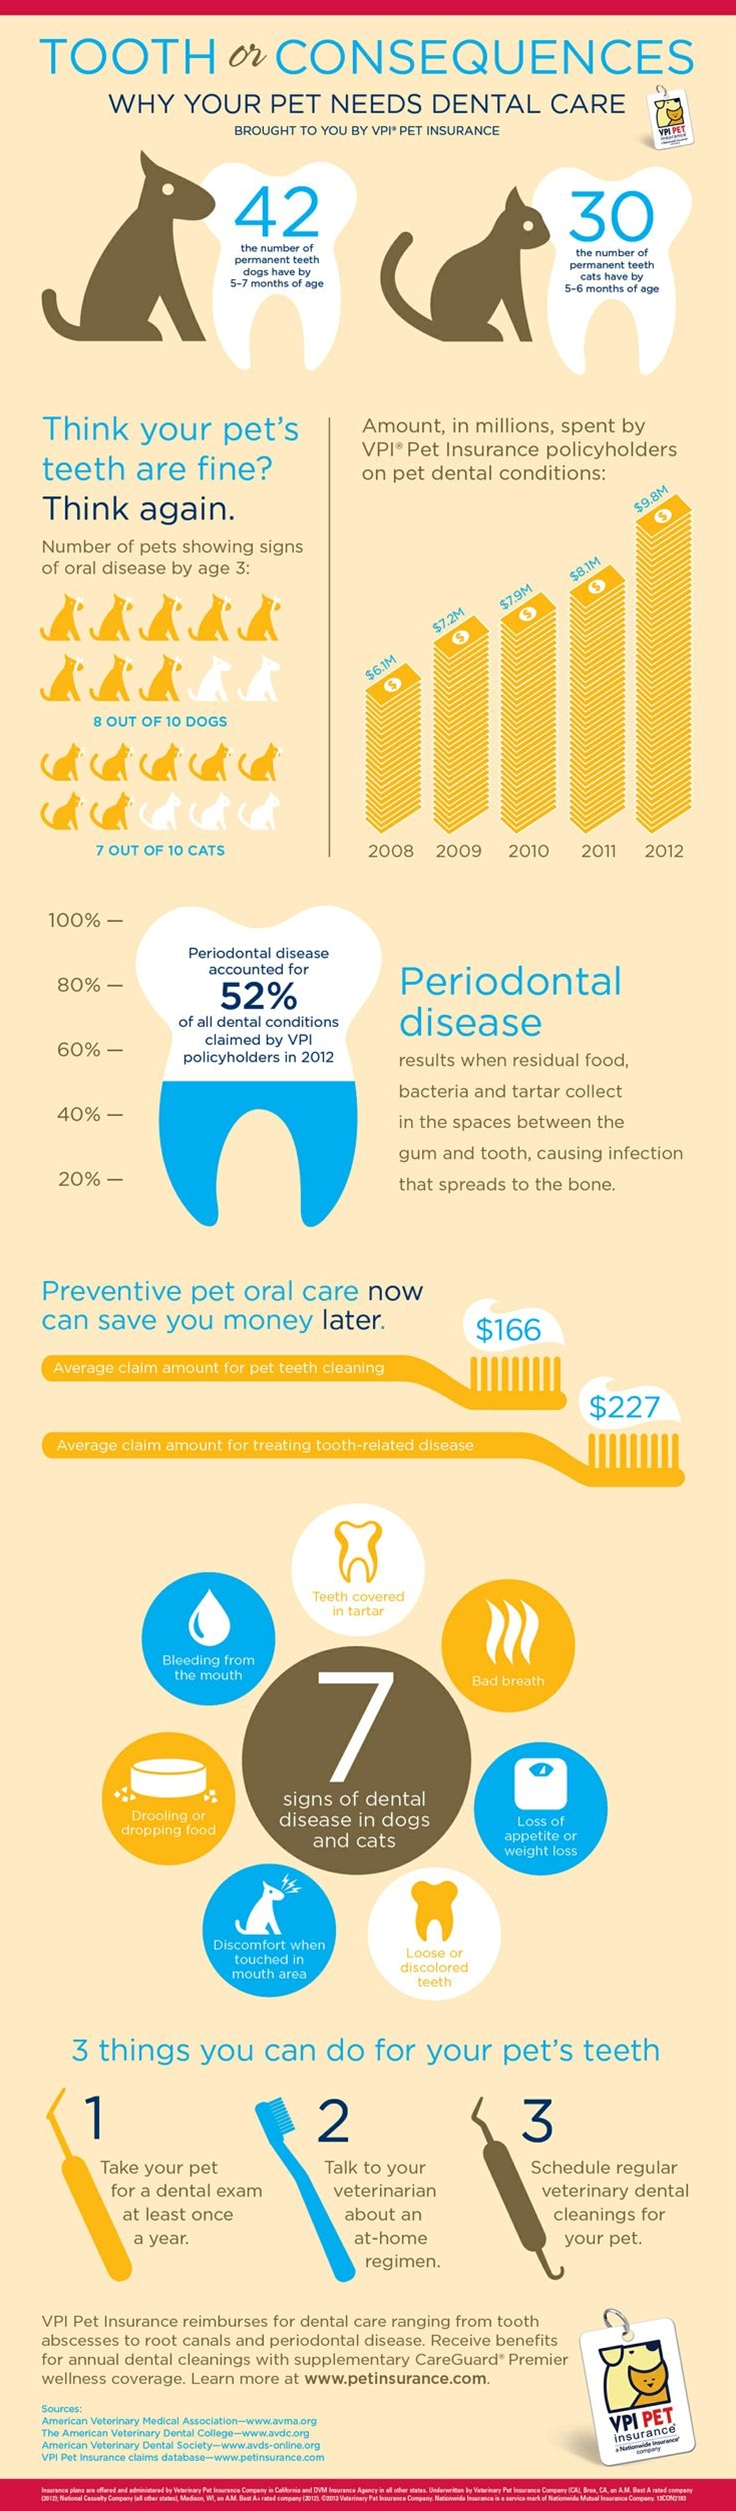 Check out the infographic on why it's important to keep your pet's pearly whites healthy!